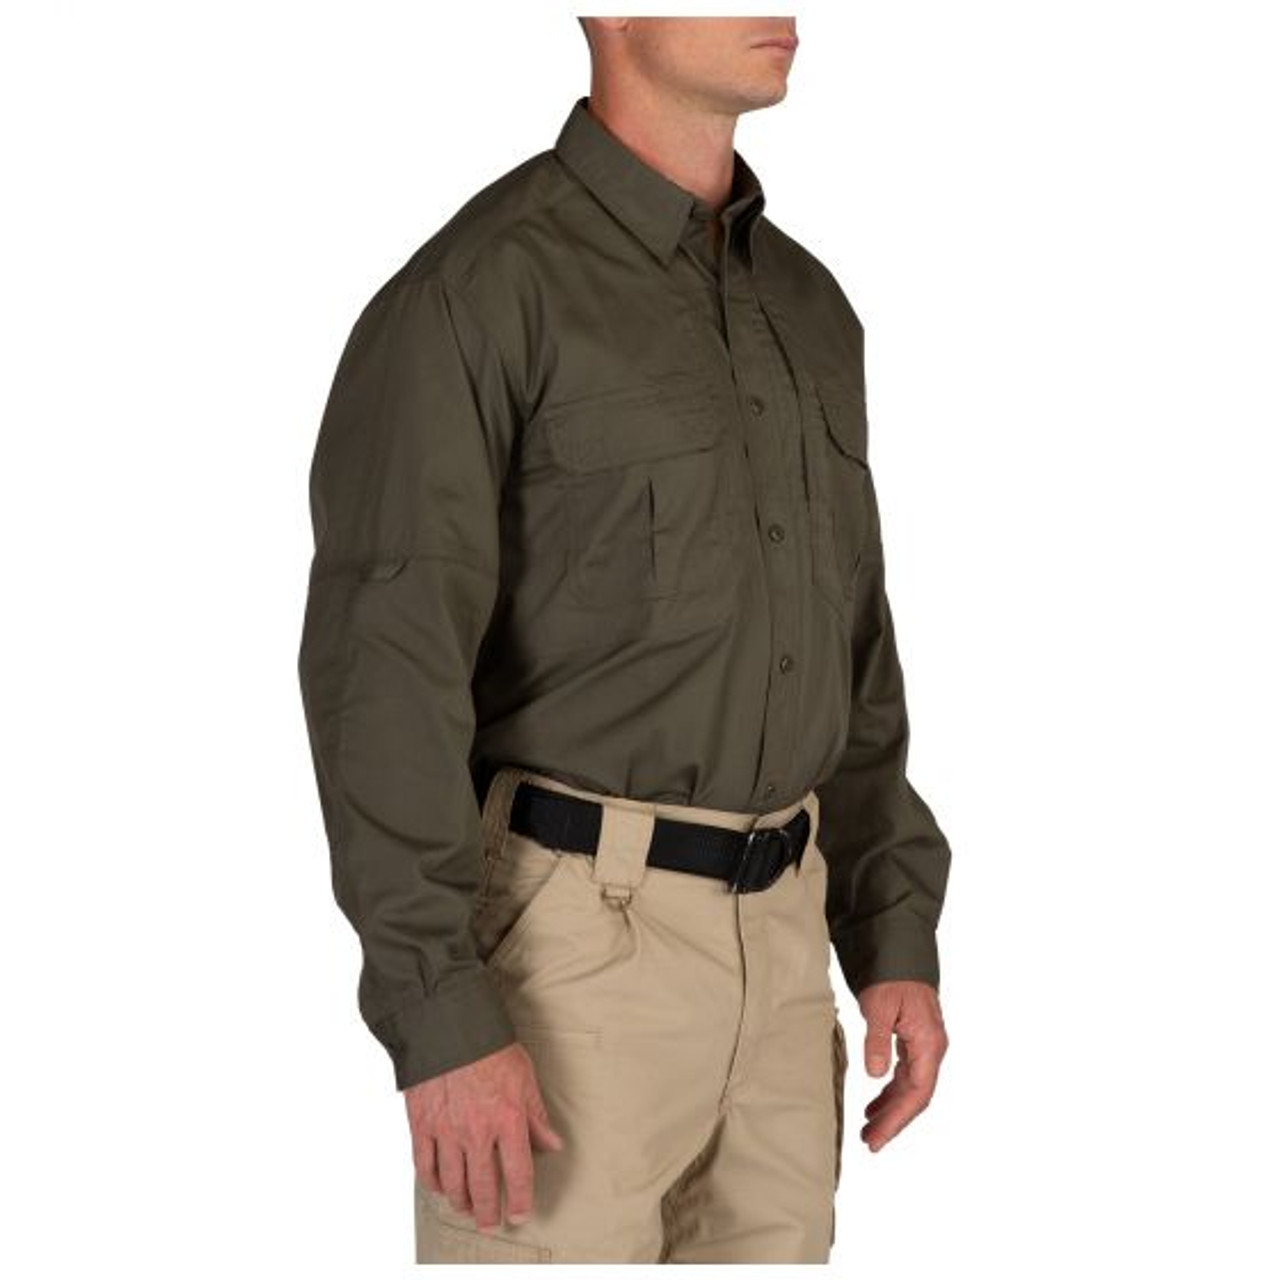 5.11 Tactical 72175 TacLite Pro Long Sleeve, Casual Button-Down Shirt, Polyester/Cotton, with 2 Chest Pockets